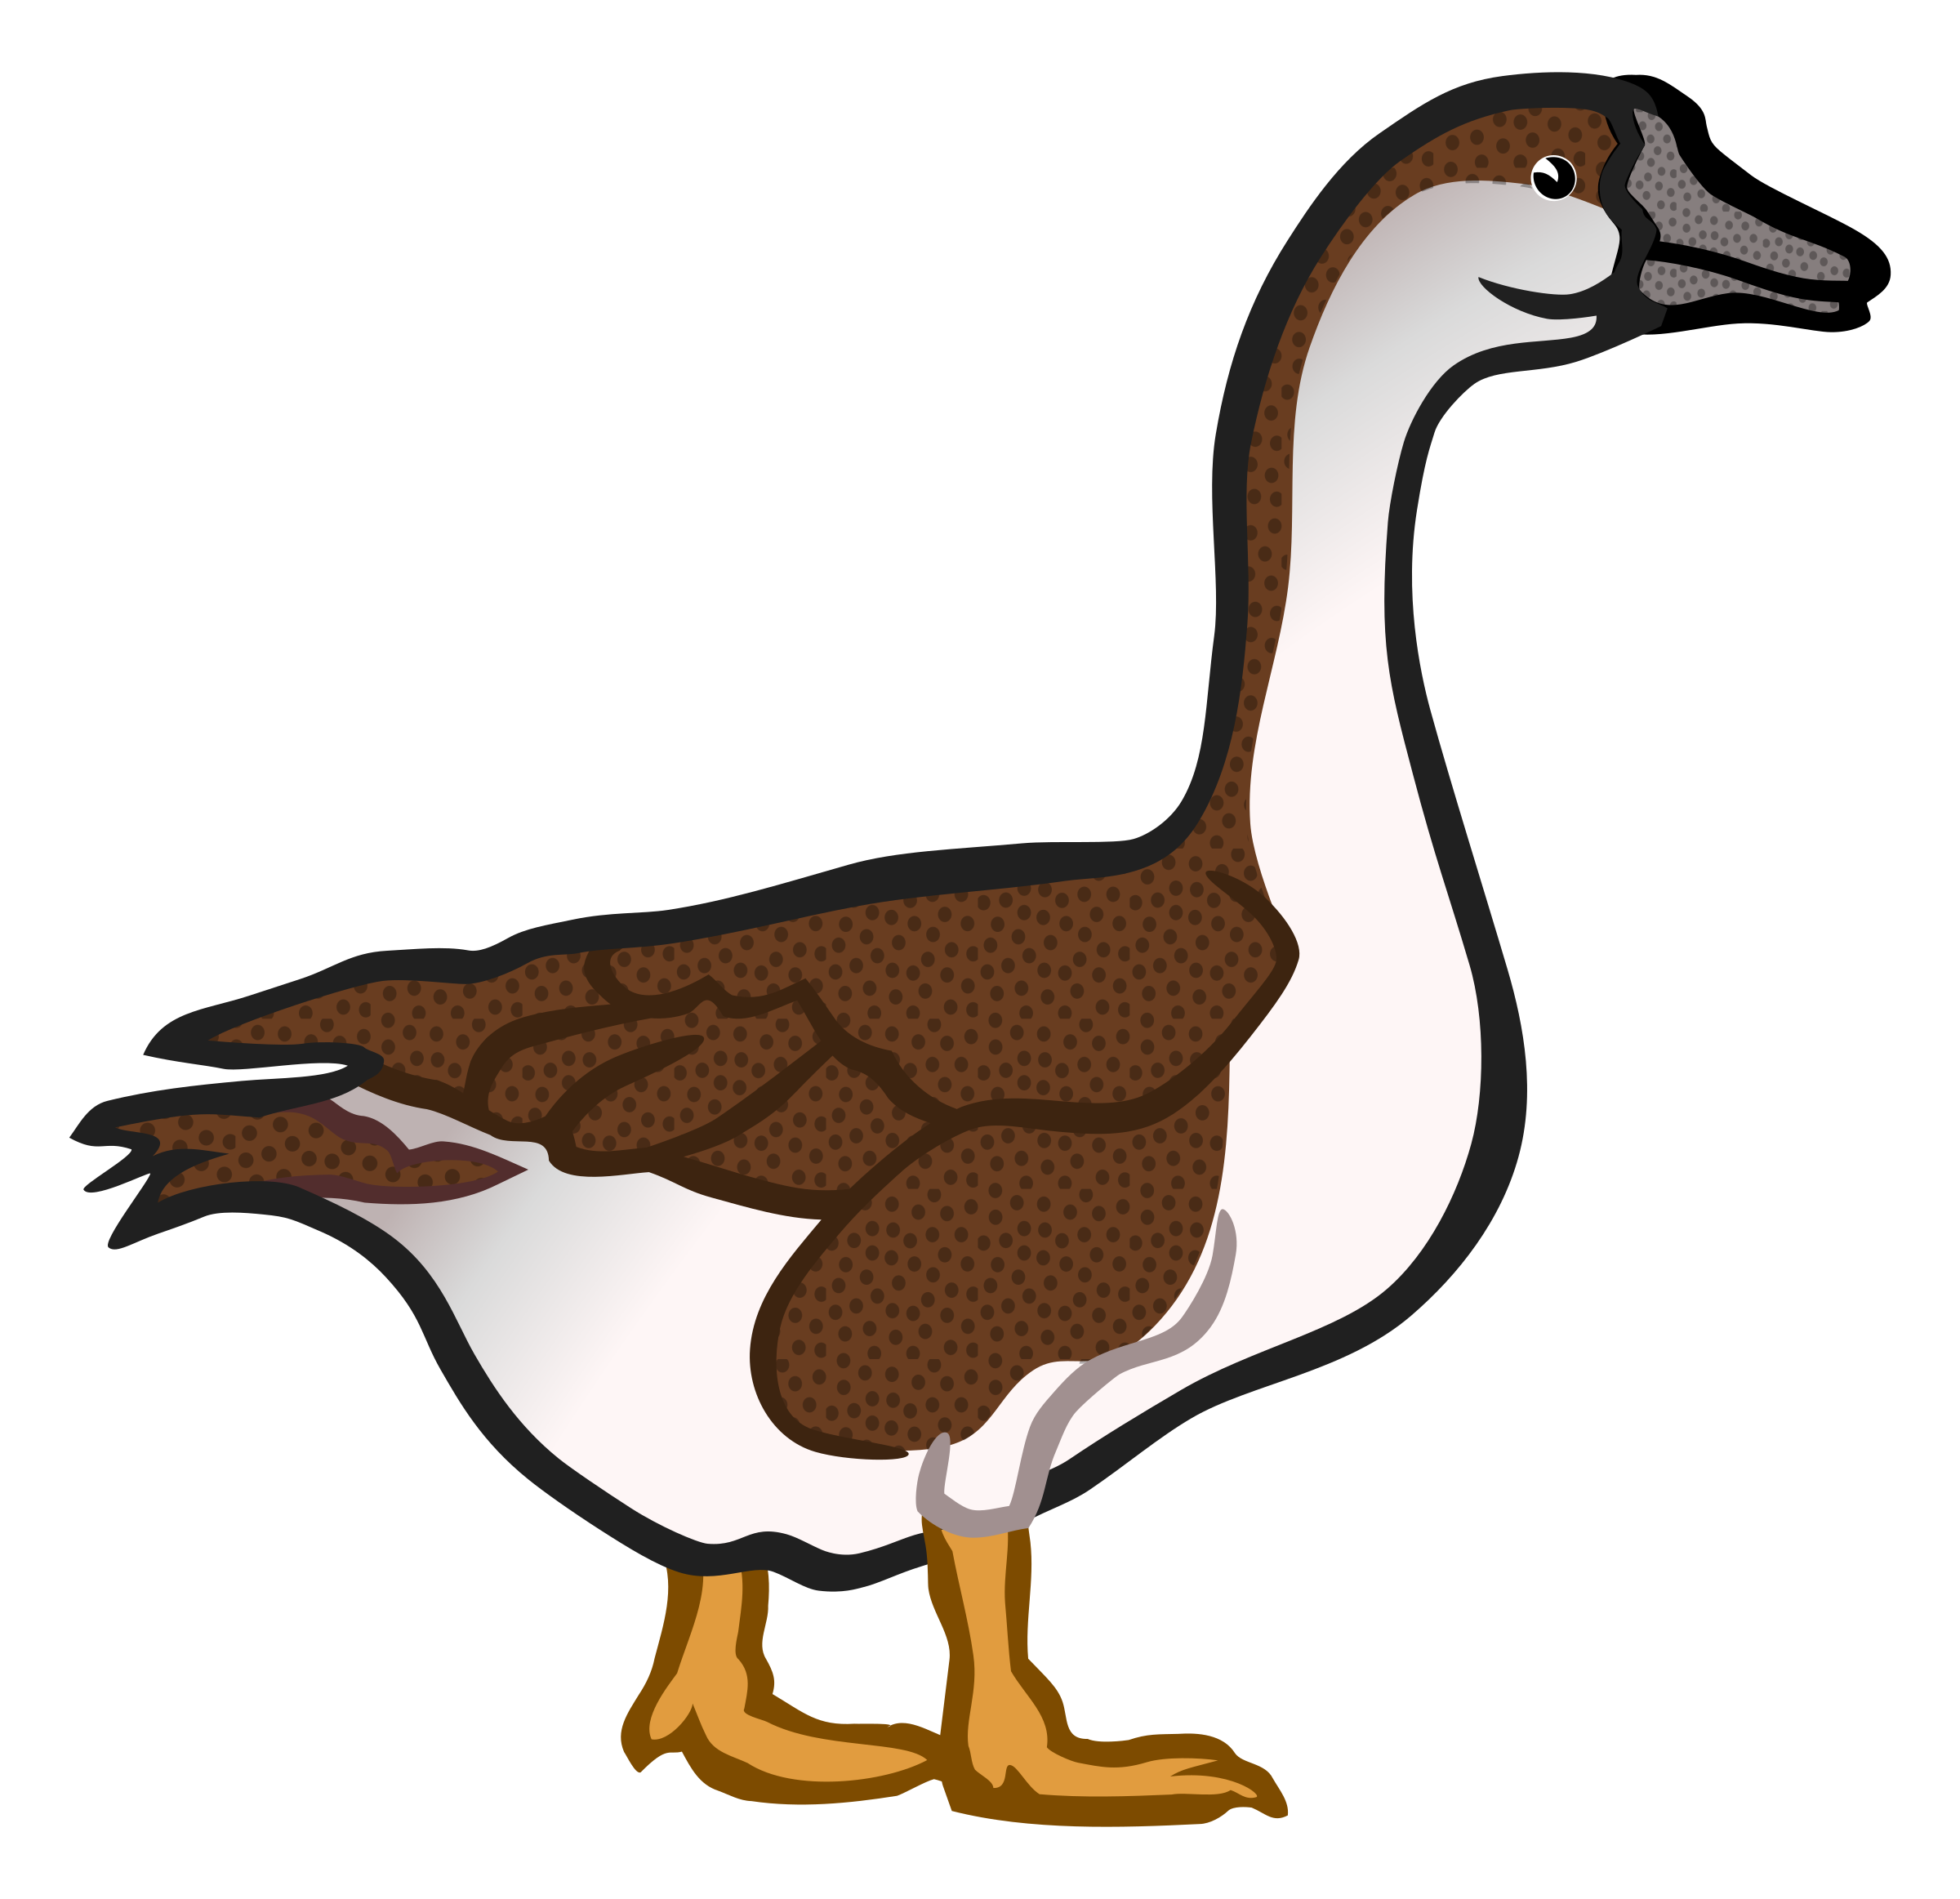 goose2 - coloured by frankes